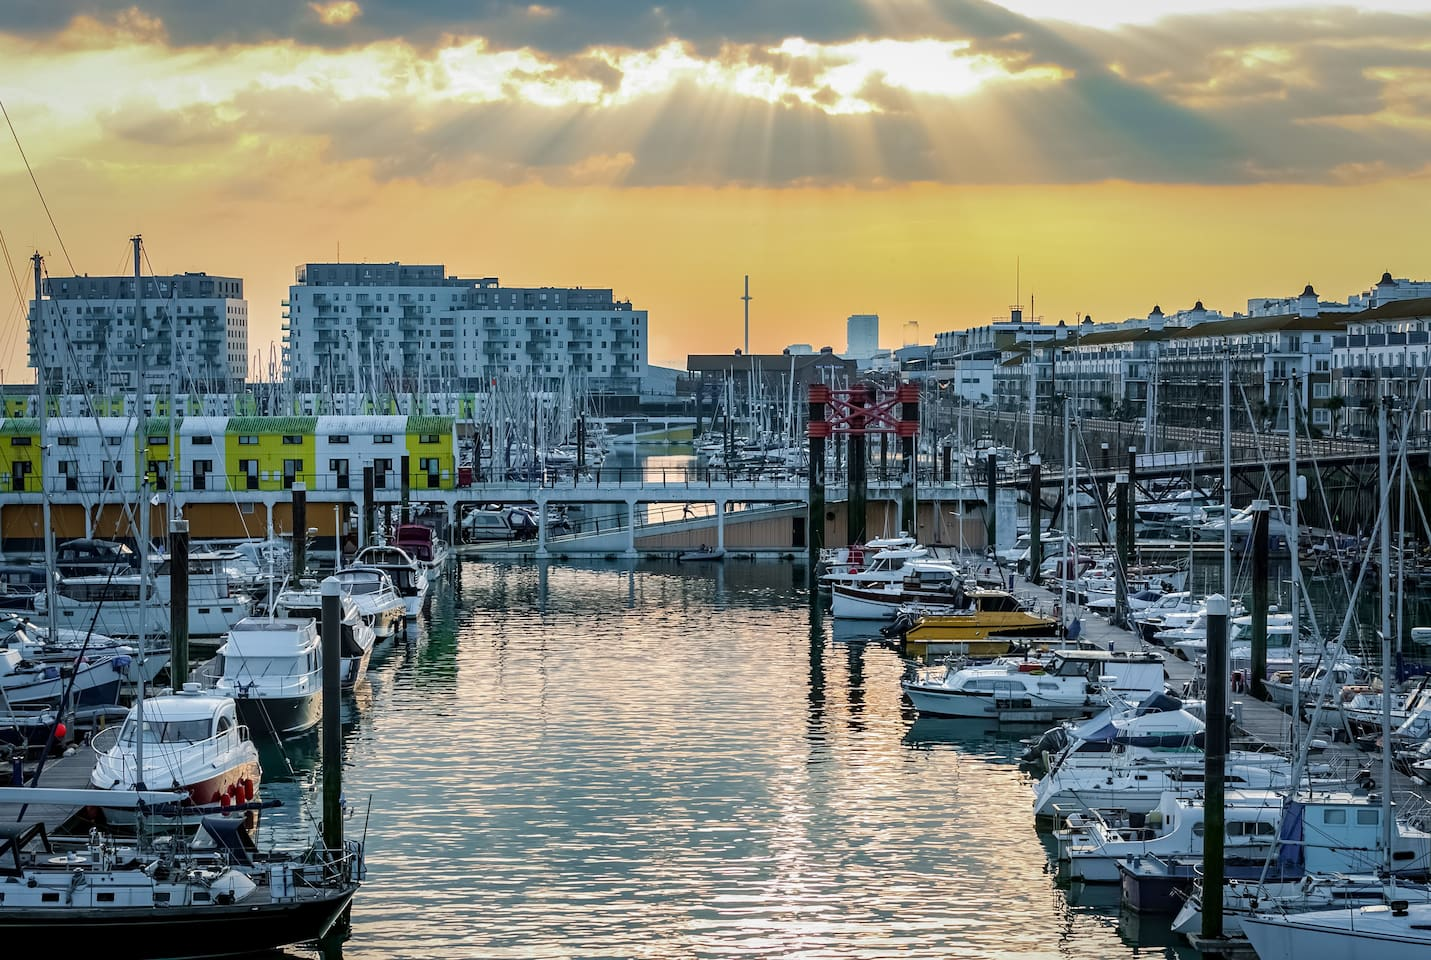 Brighton Marina at sunset, with the Rethink Living apartments in the background (large buildings, top left of the picture)